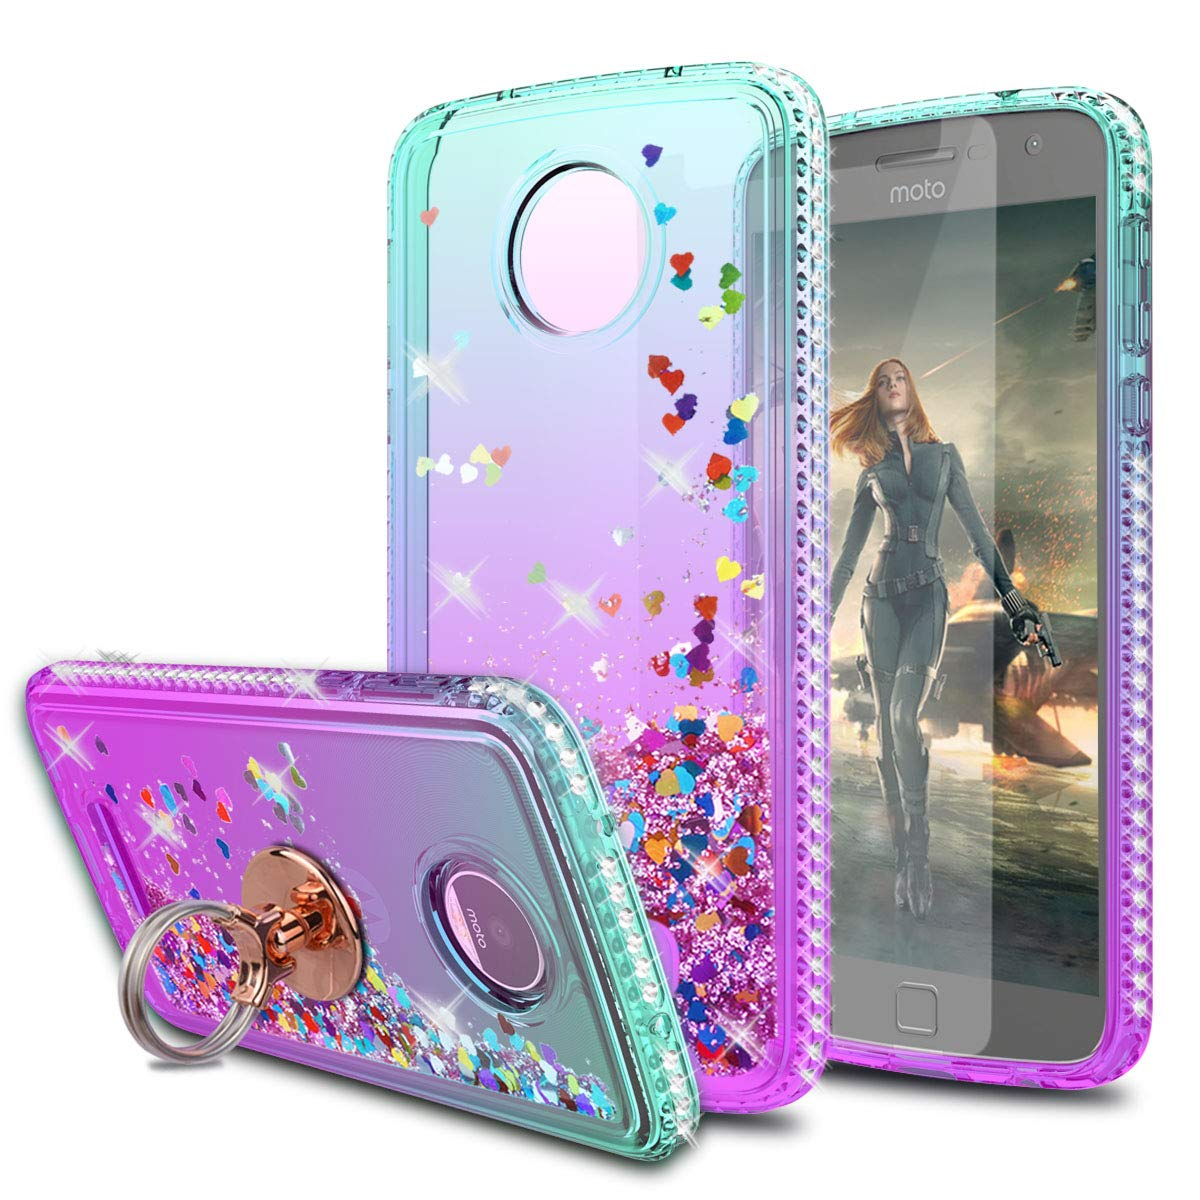 KaiMai Moto Z Play Case,Moto Z Force Case with HD Screen Protector with Ring Holder, Glitter Moving Quicksand Clear Cute Shiny Phone Case for Moto Z Play-Aqua/Purple Ring by KaiMai